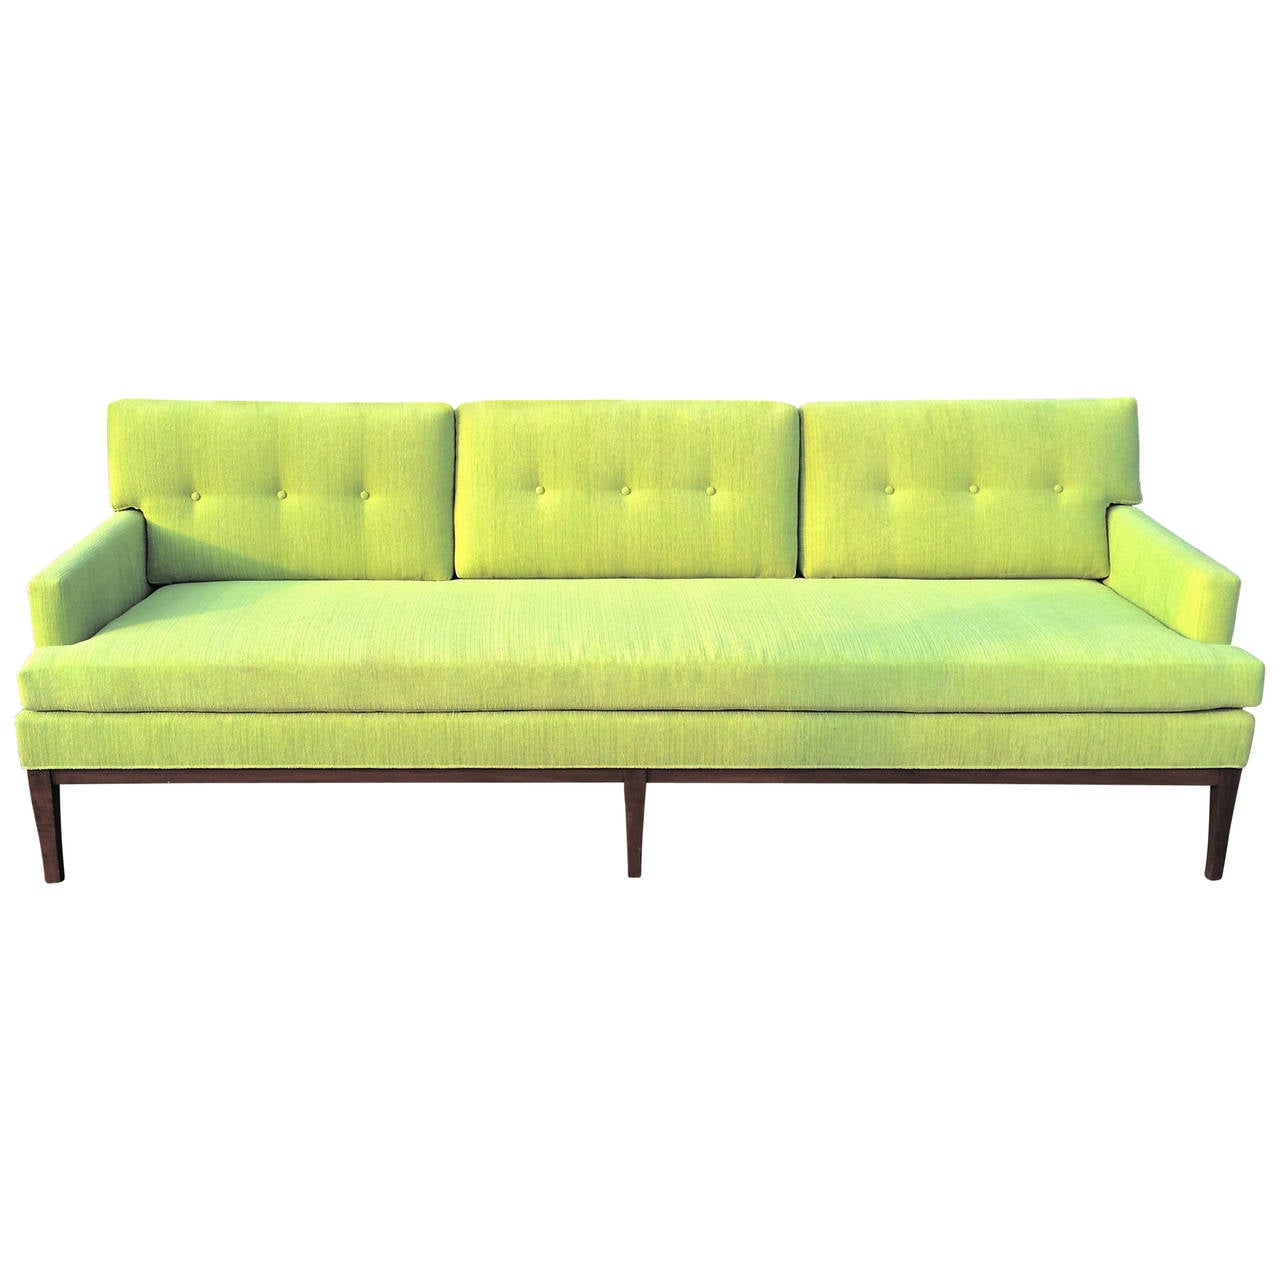 Mid Century Modern Paul Mccobb Directional Upholstered Walnut Sofa At 1stdibs